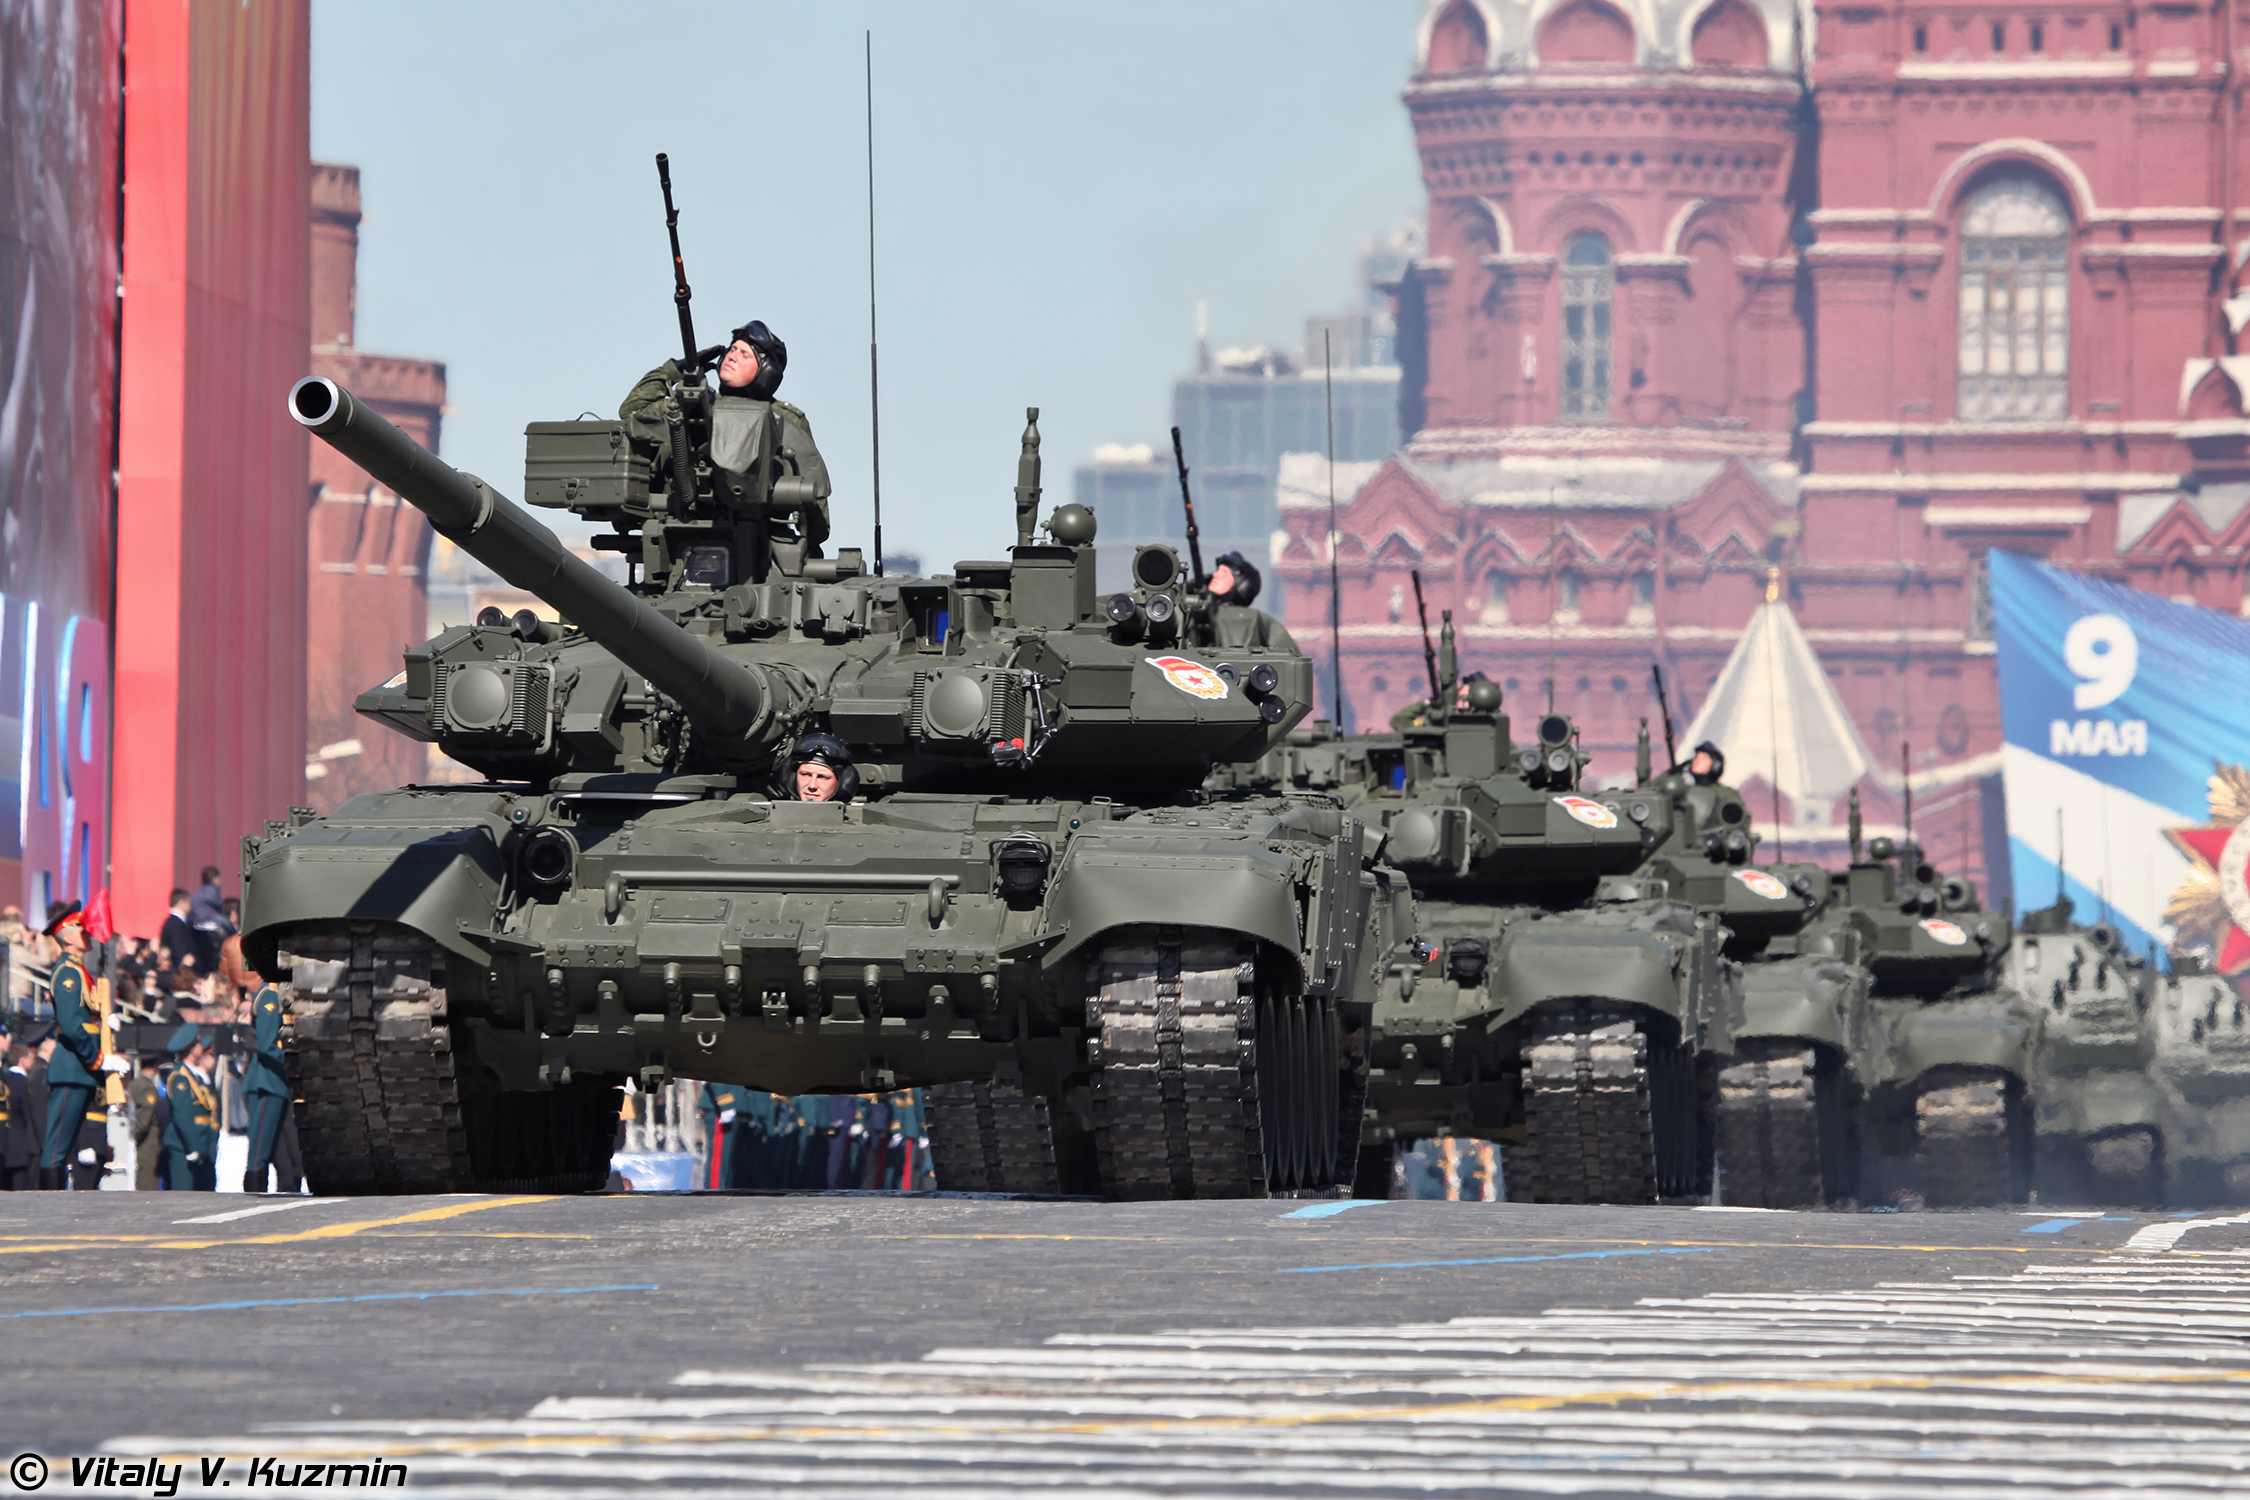 Serbia 'close' to participating in Moscow parade